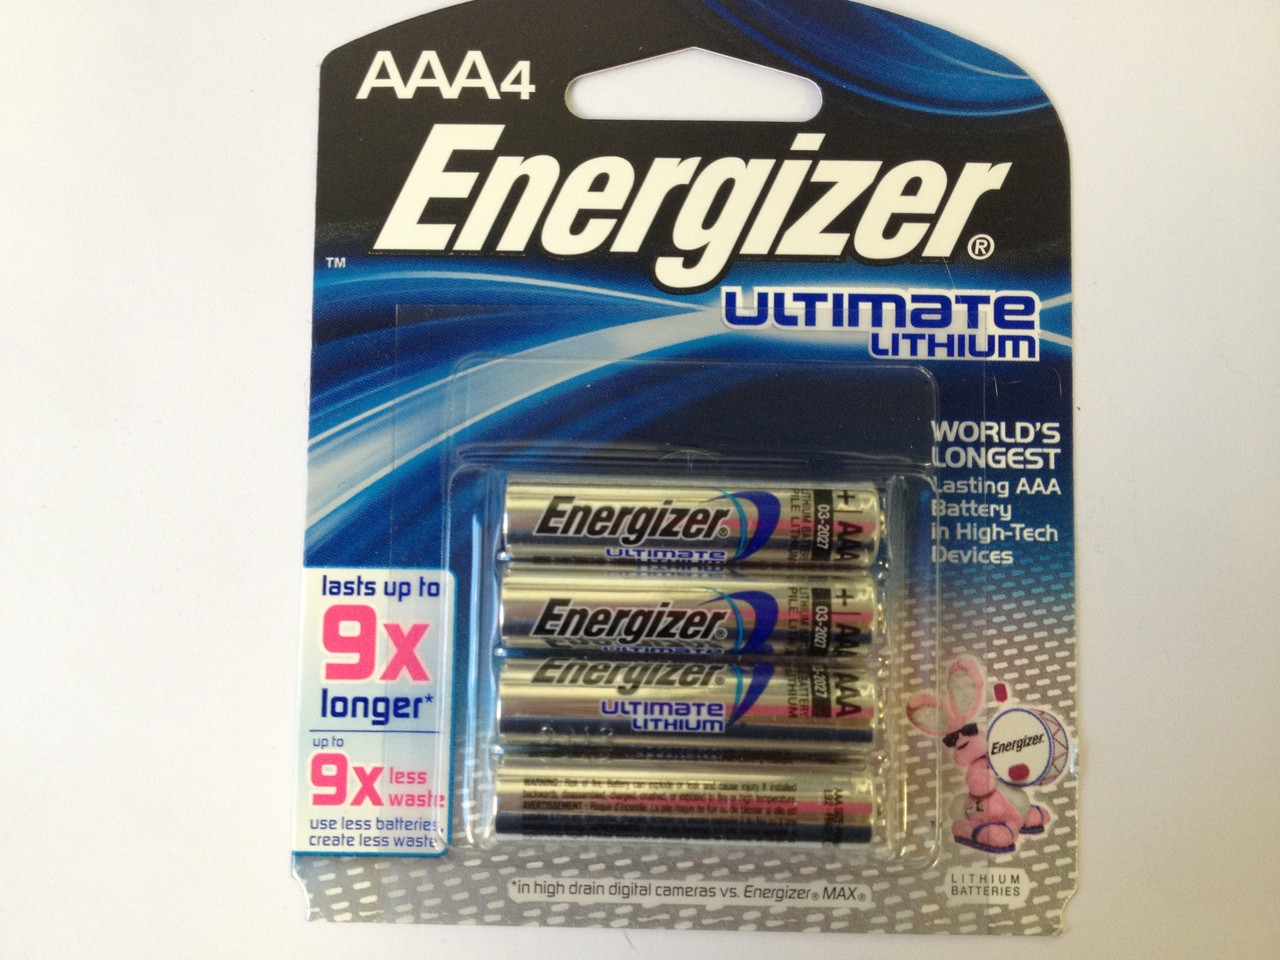 Energizer L92 AAA Lithium Batteries 1.5V - Retail